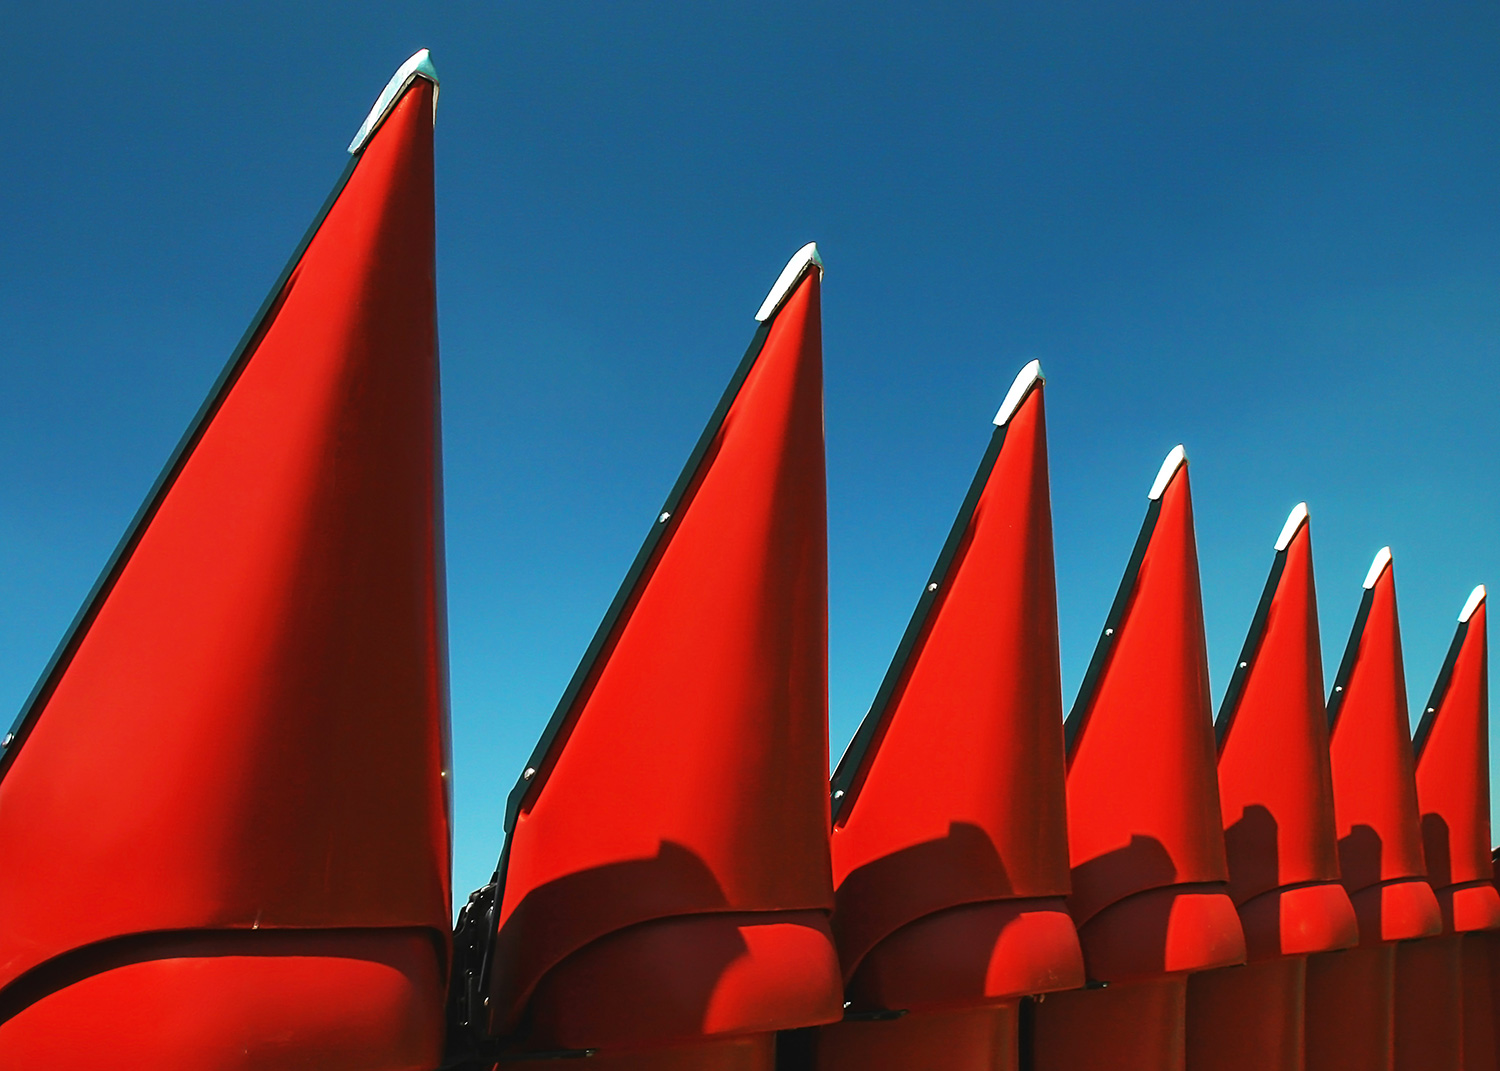 Red Row